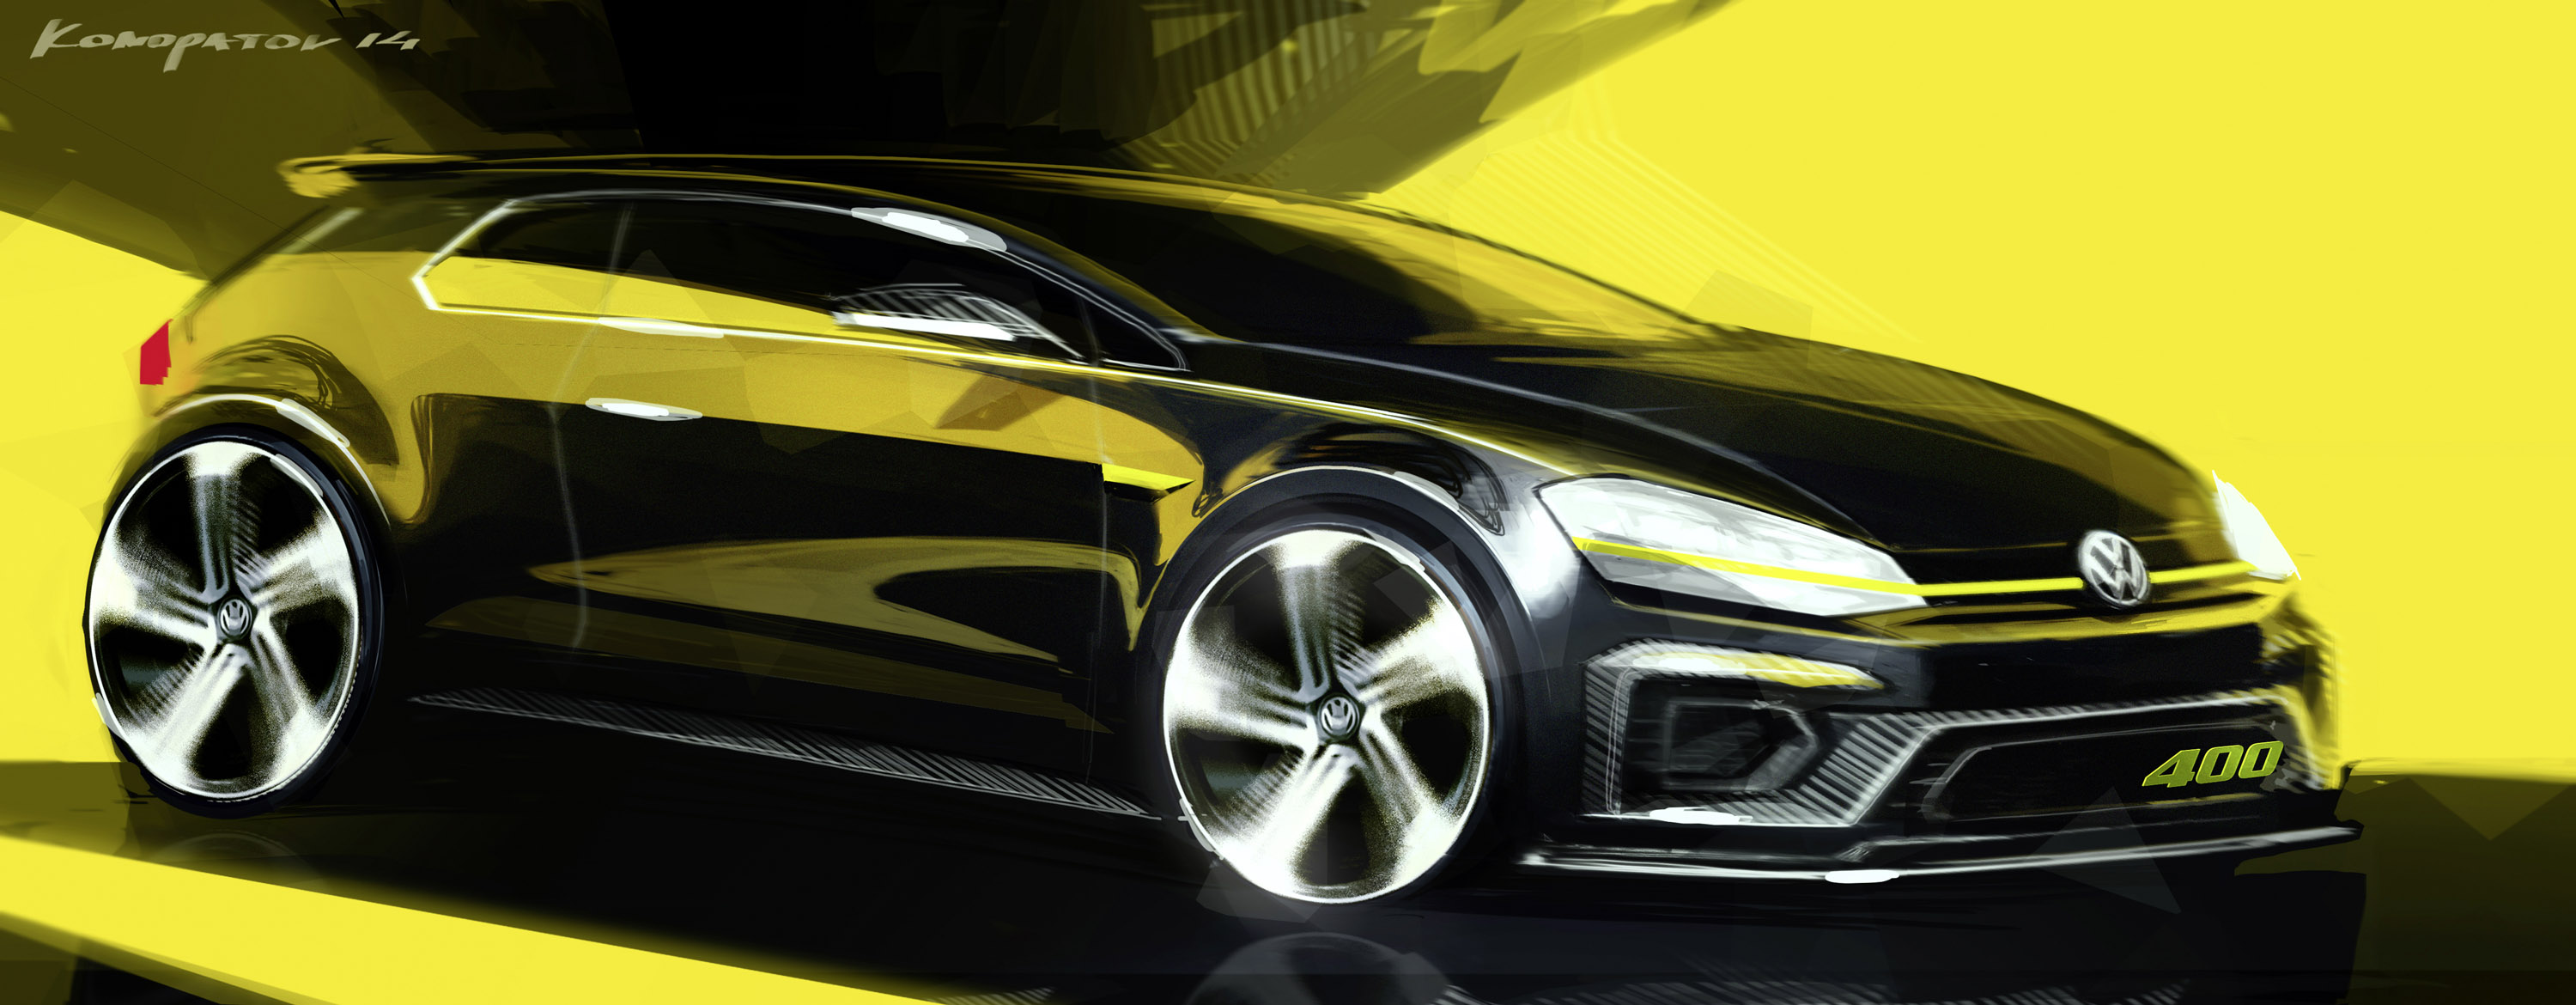 volkswagen golf r 400 concept car sketch